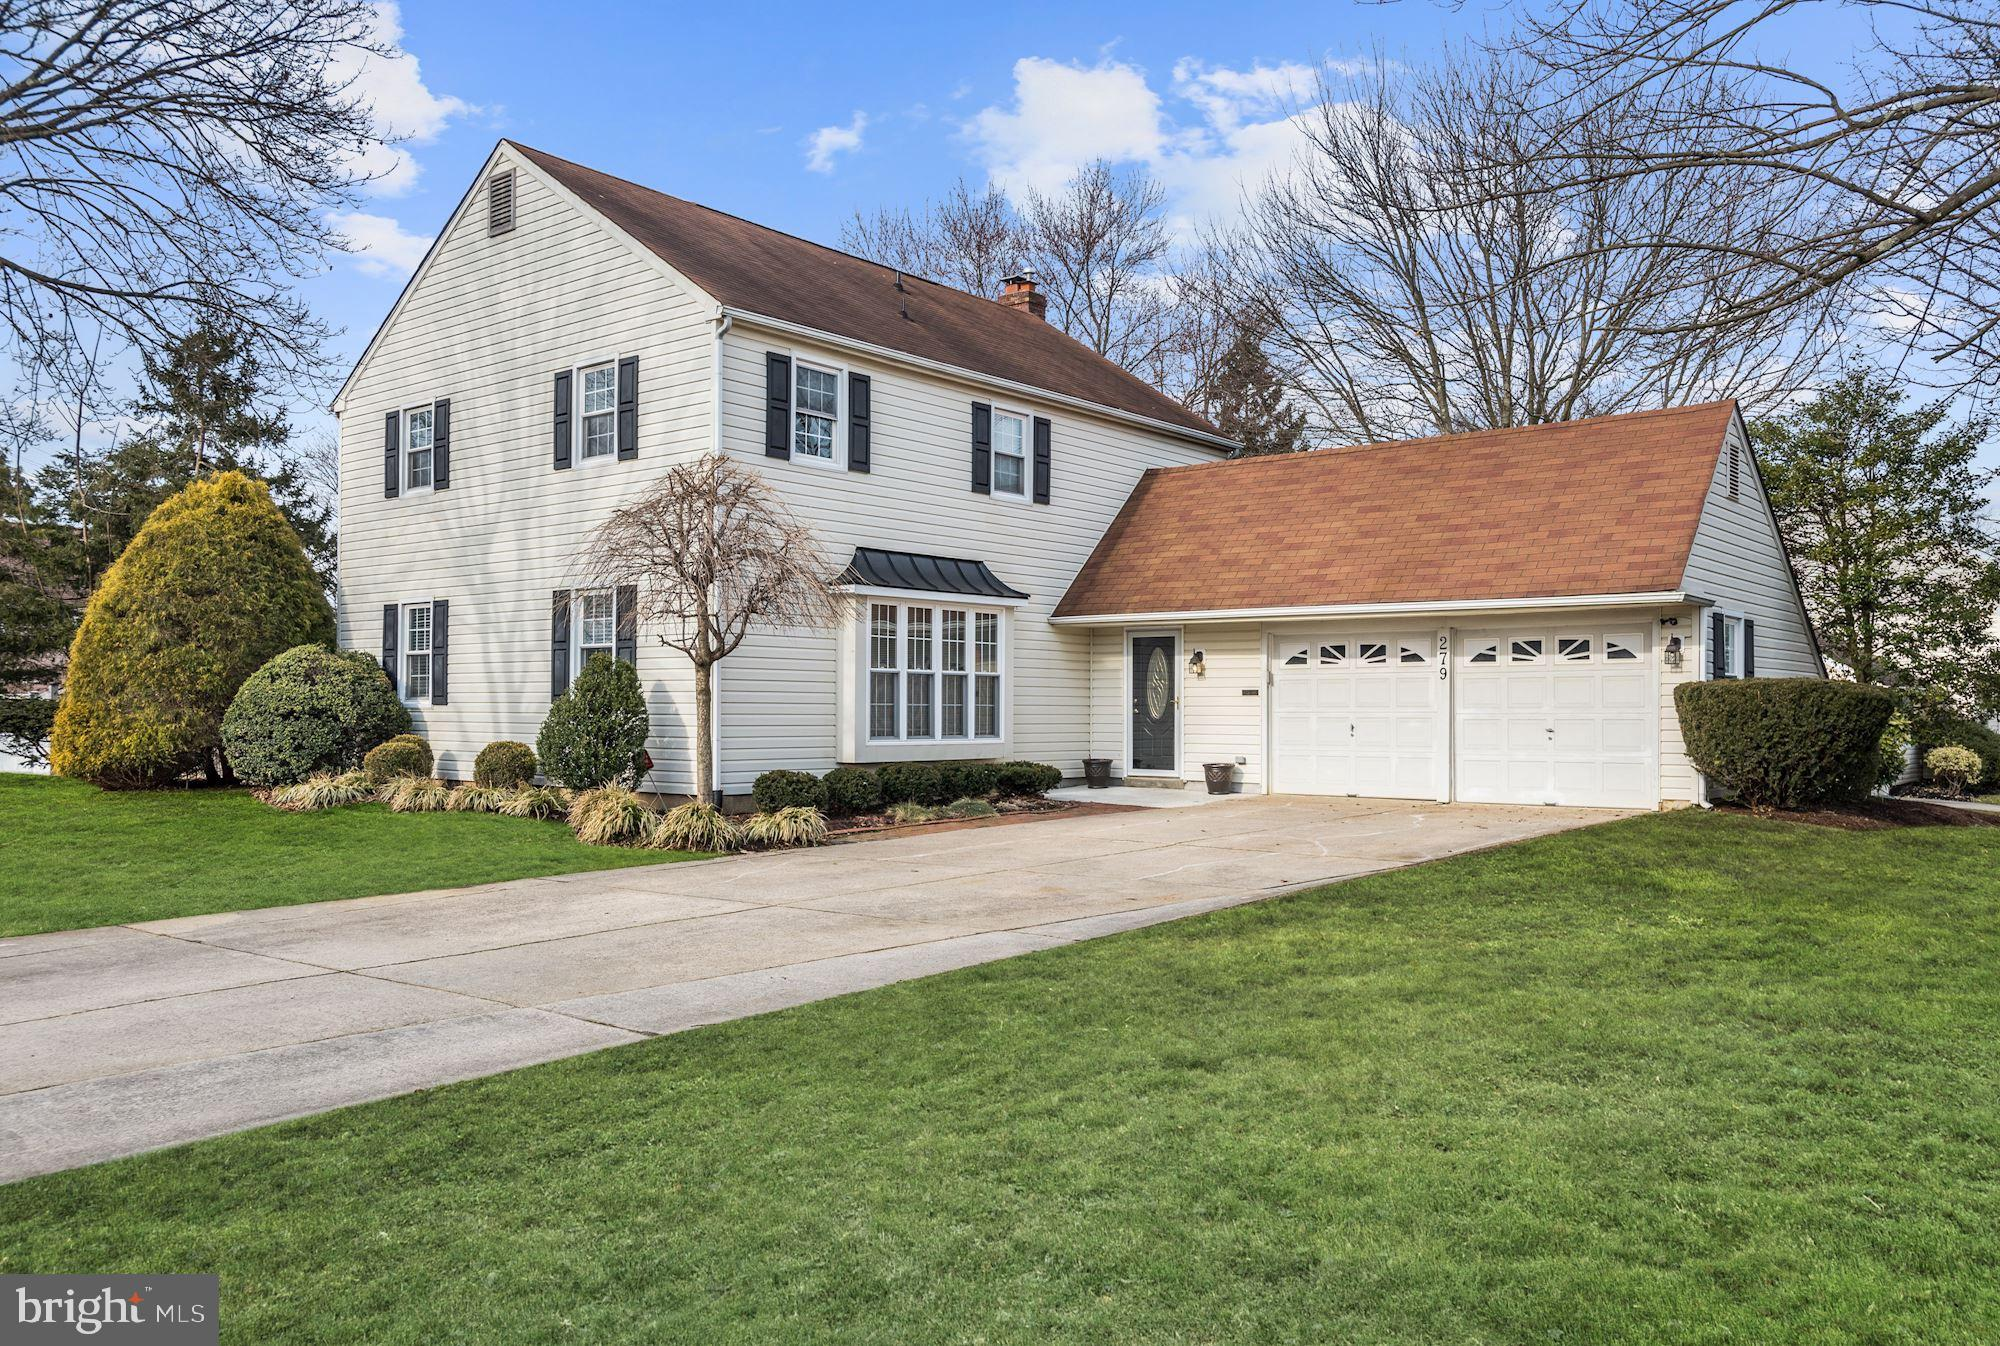 279 BURNING TREE, DELRAN, NJ 08075